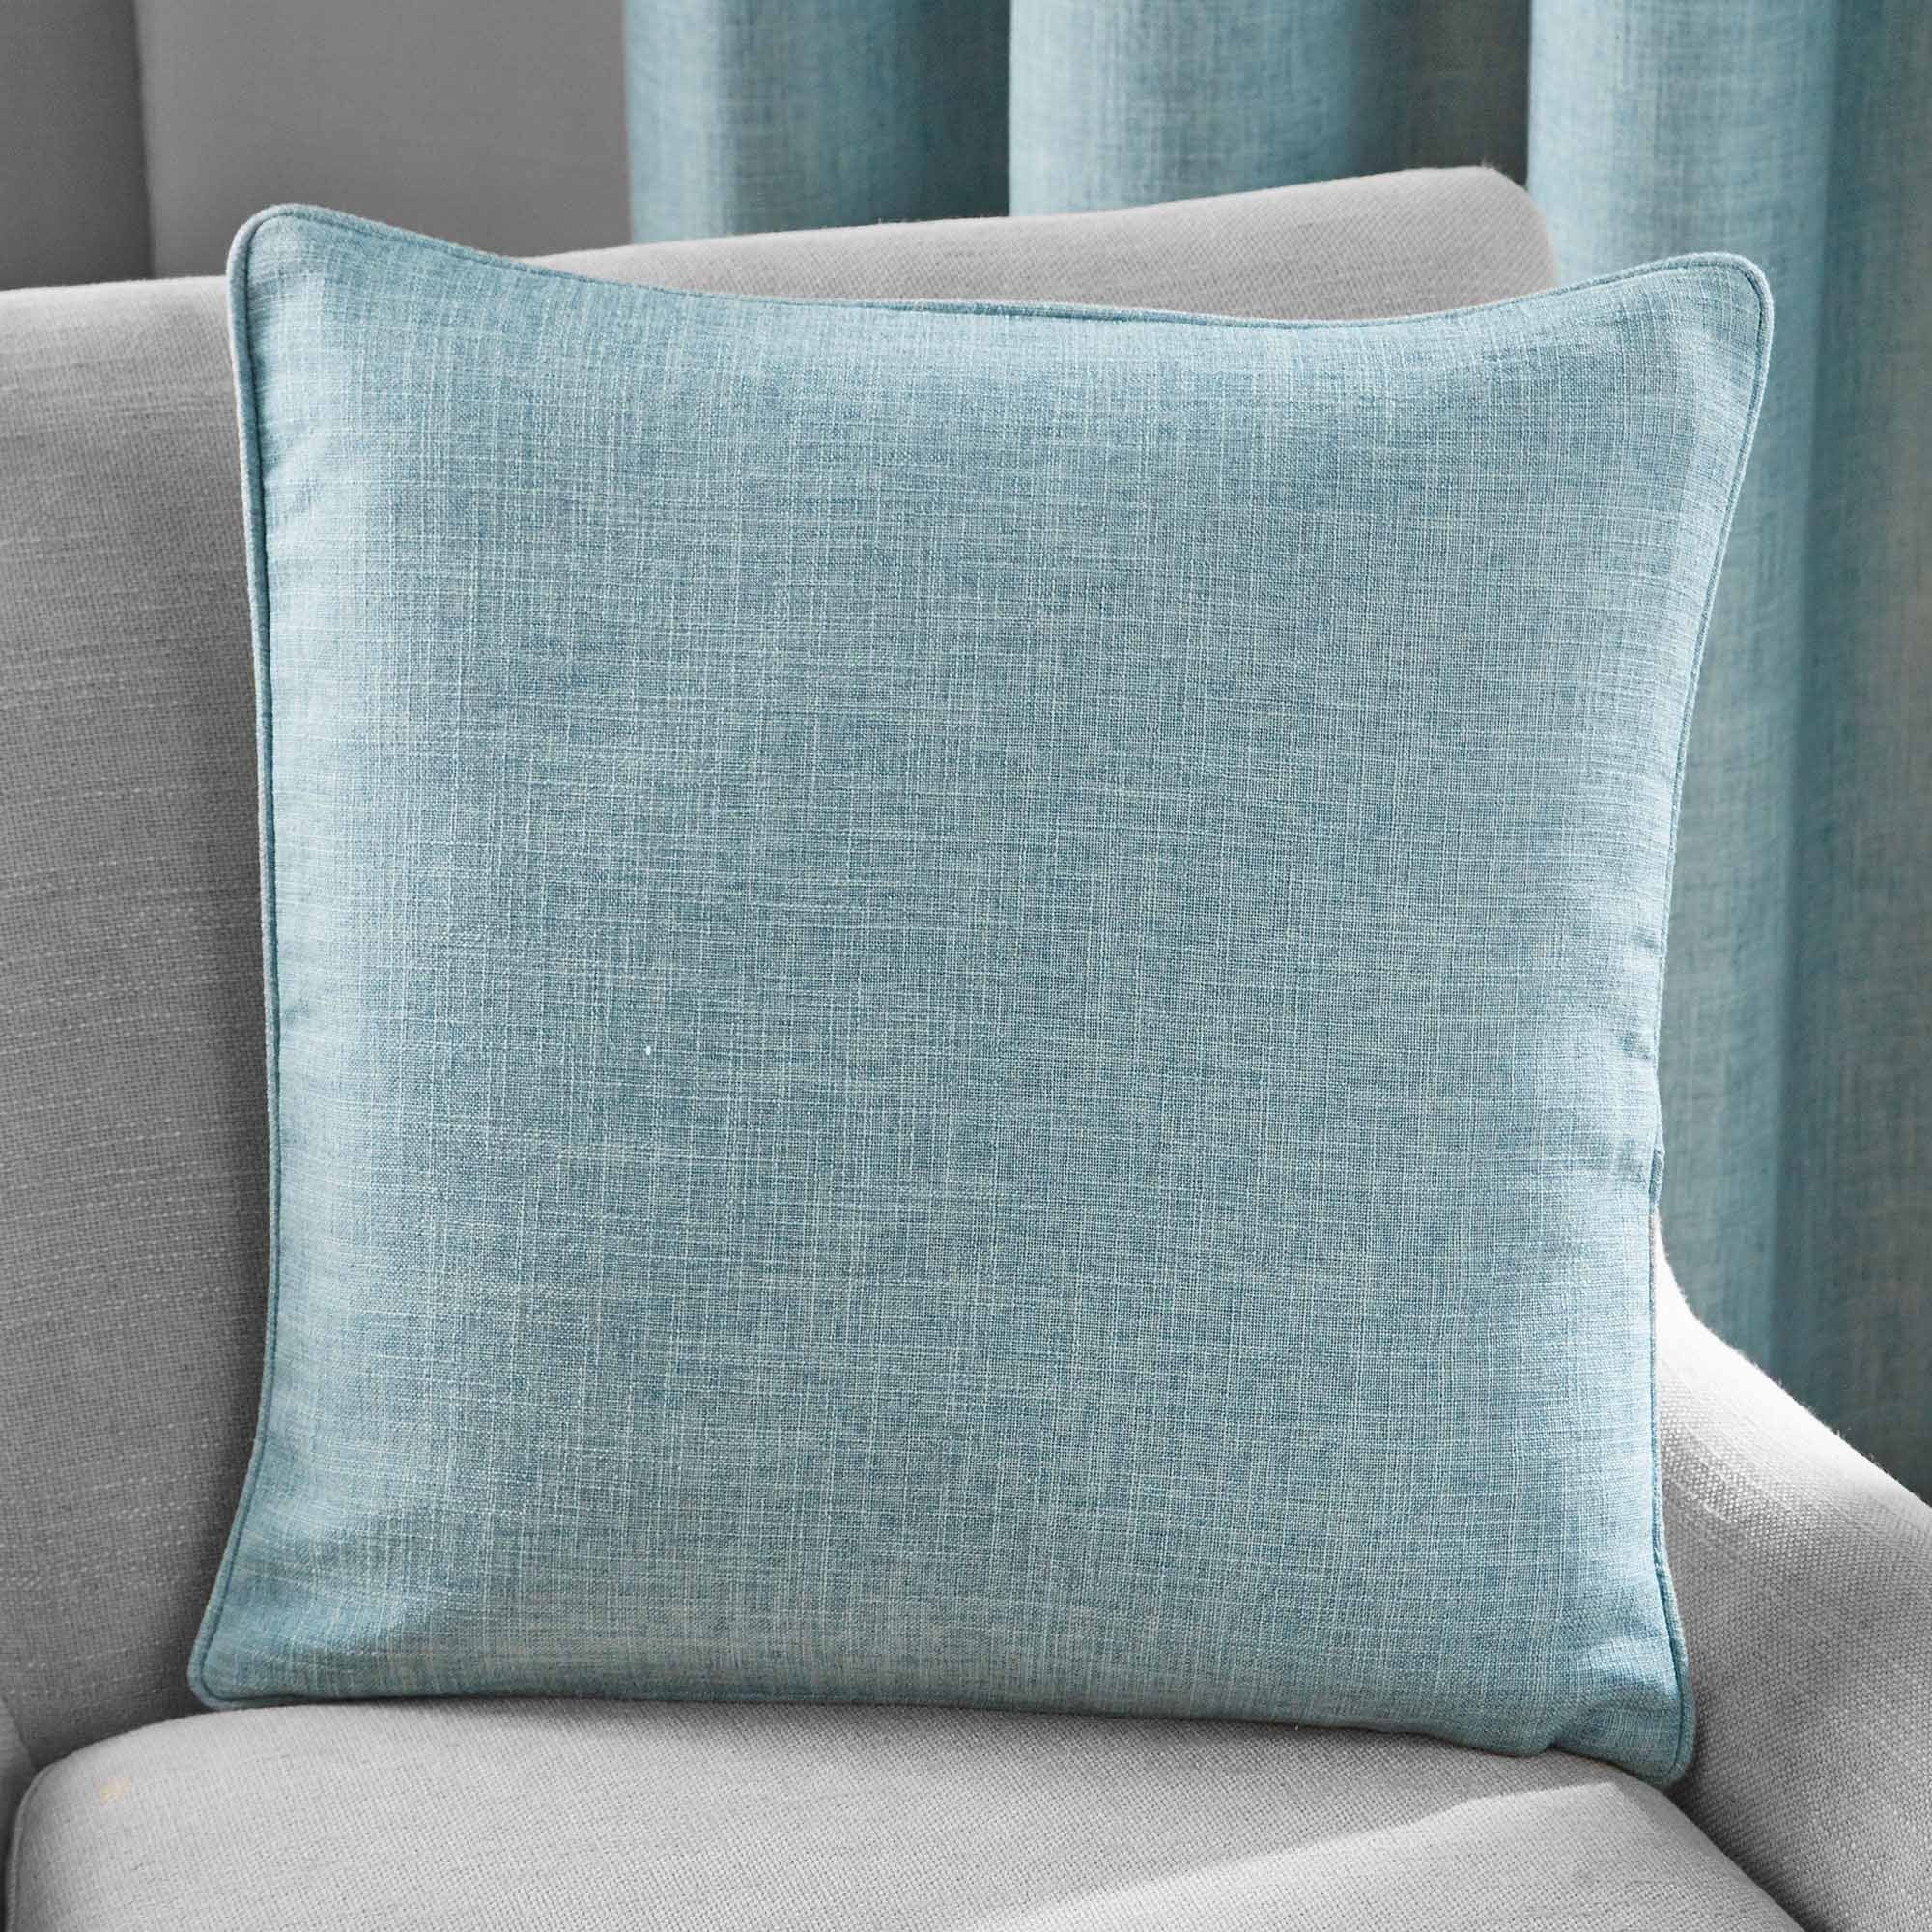 duck egg blue cushion shop for cheap house accessories. Black Bedroom Furniture Sets. Home Design Ideas